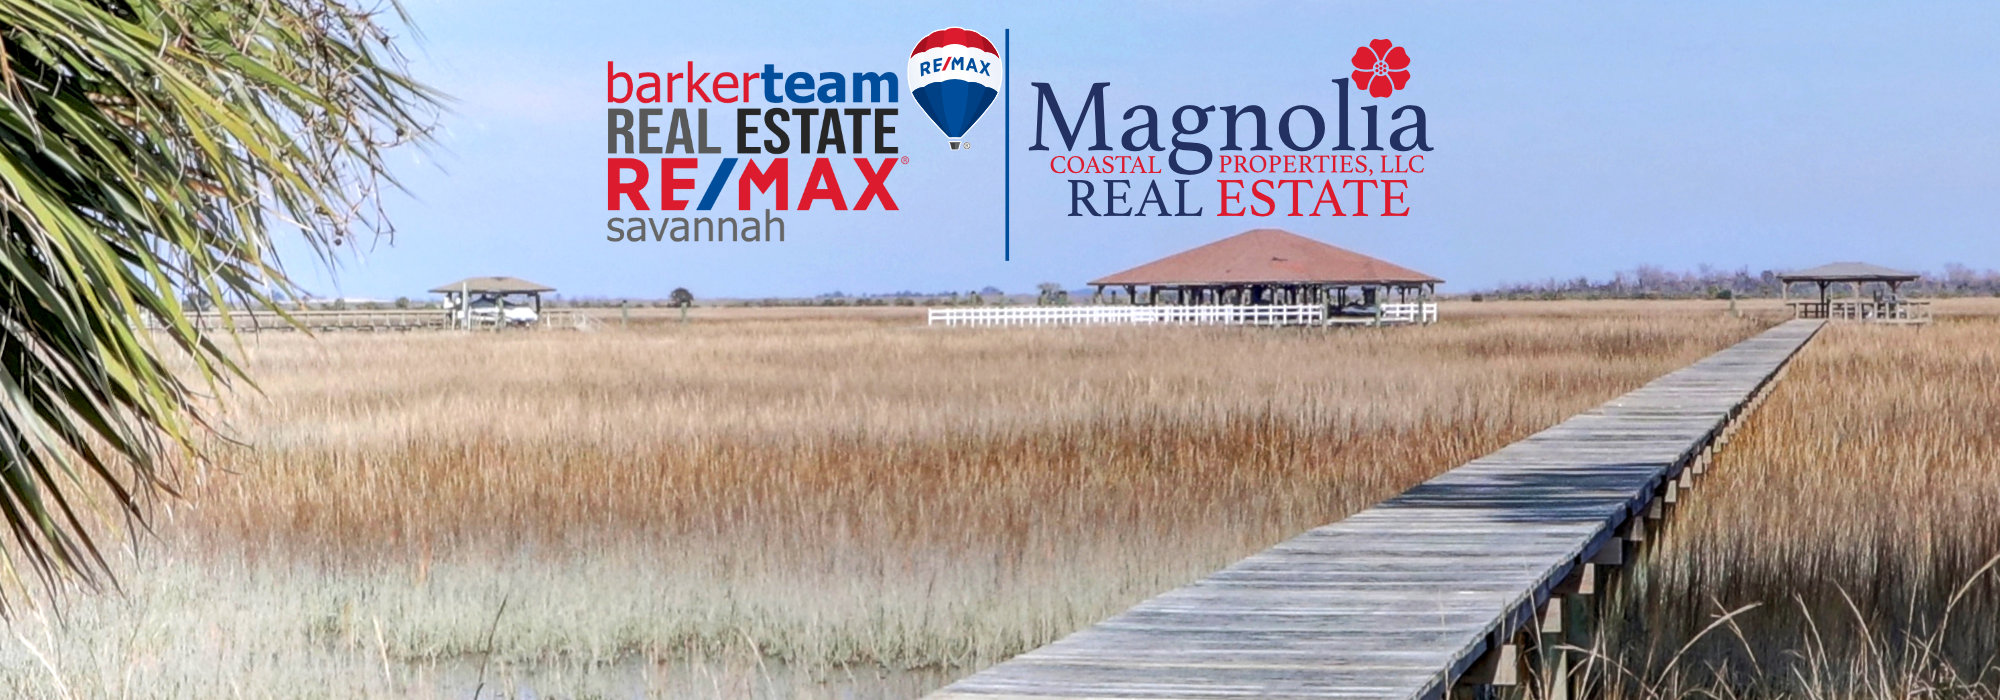 Barker Team Real Estate